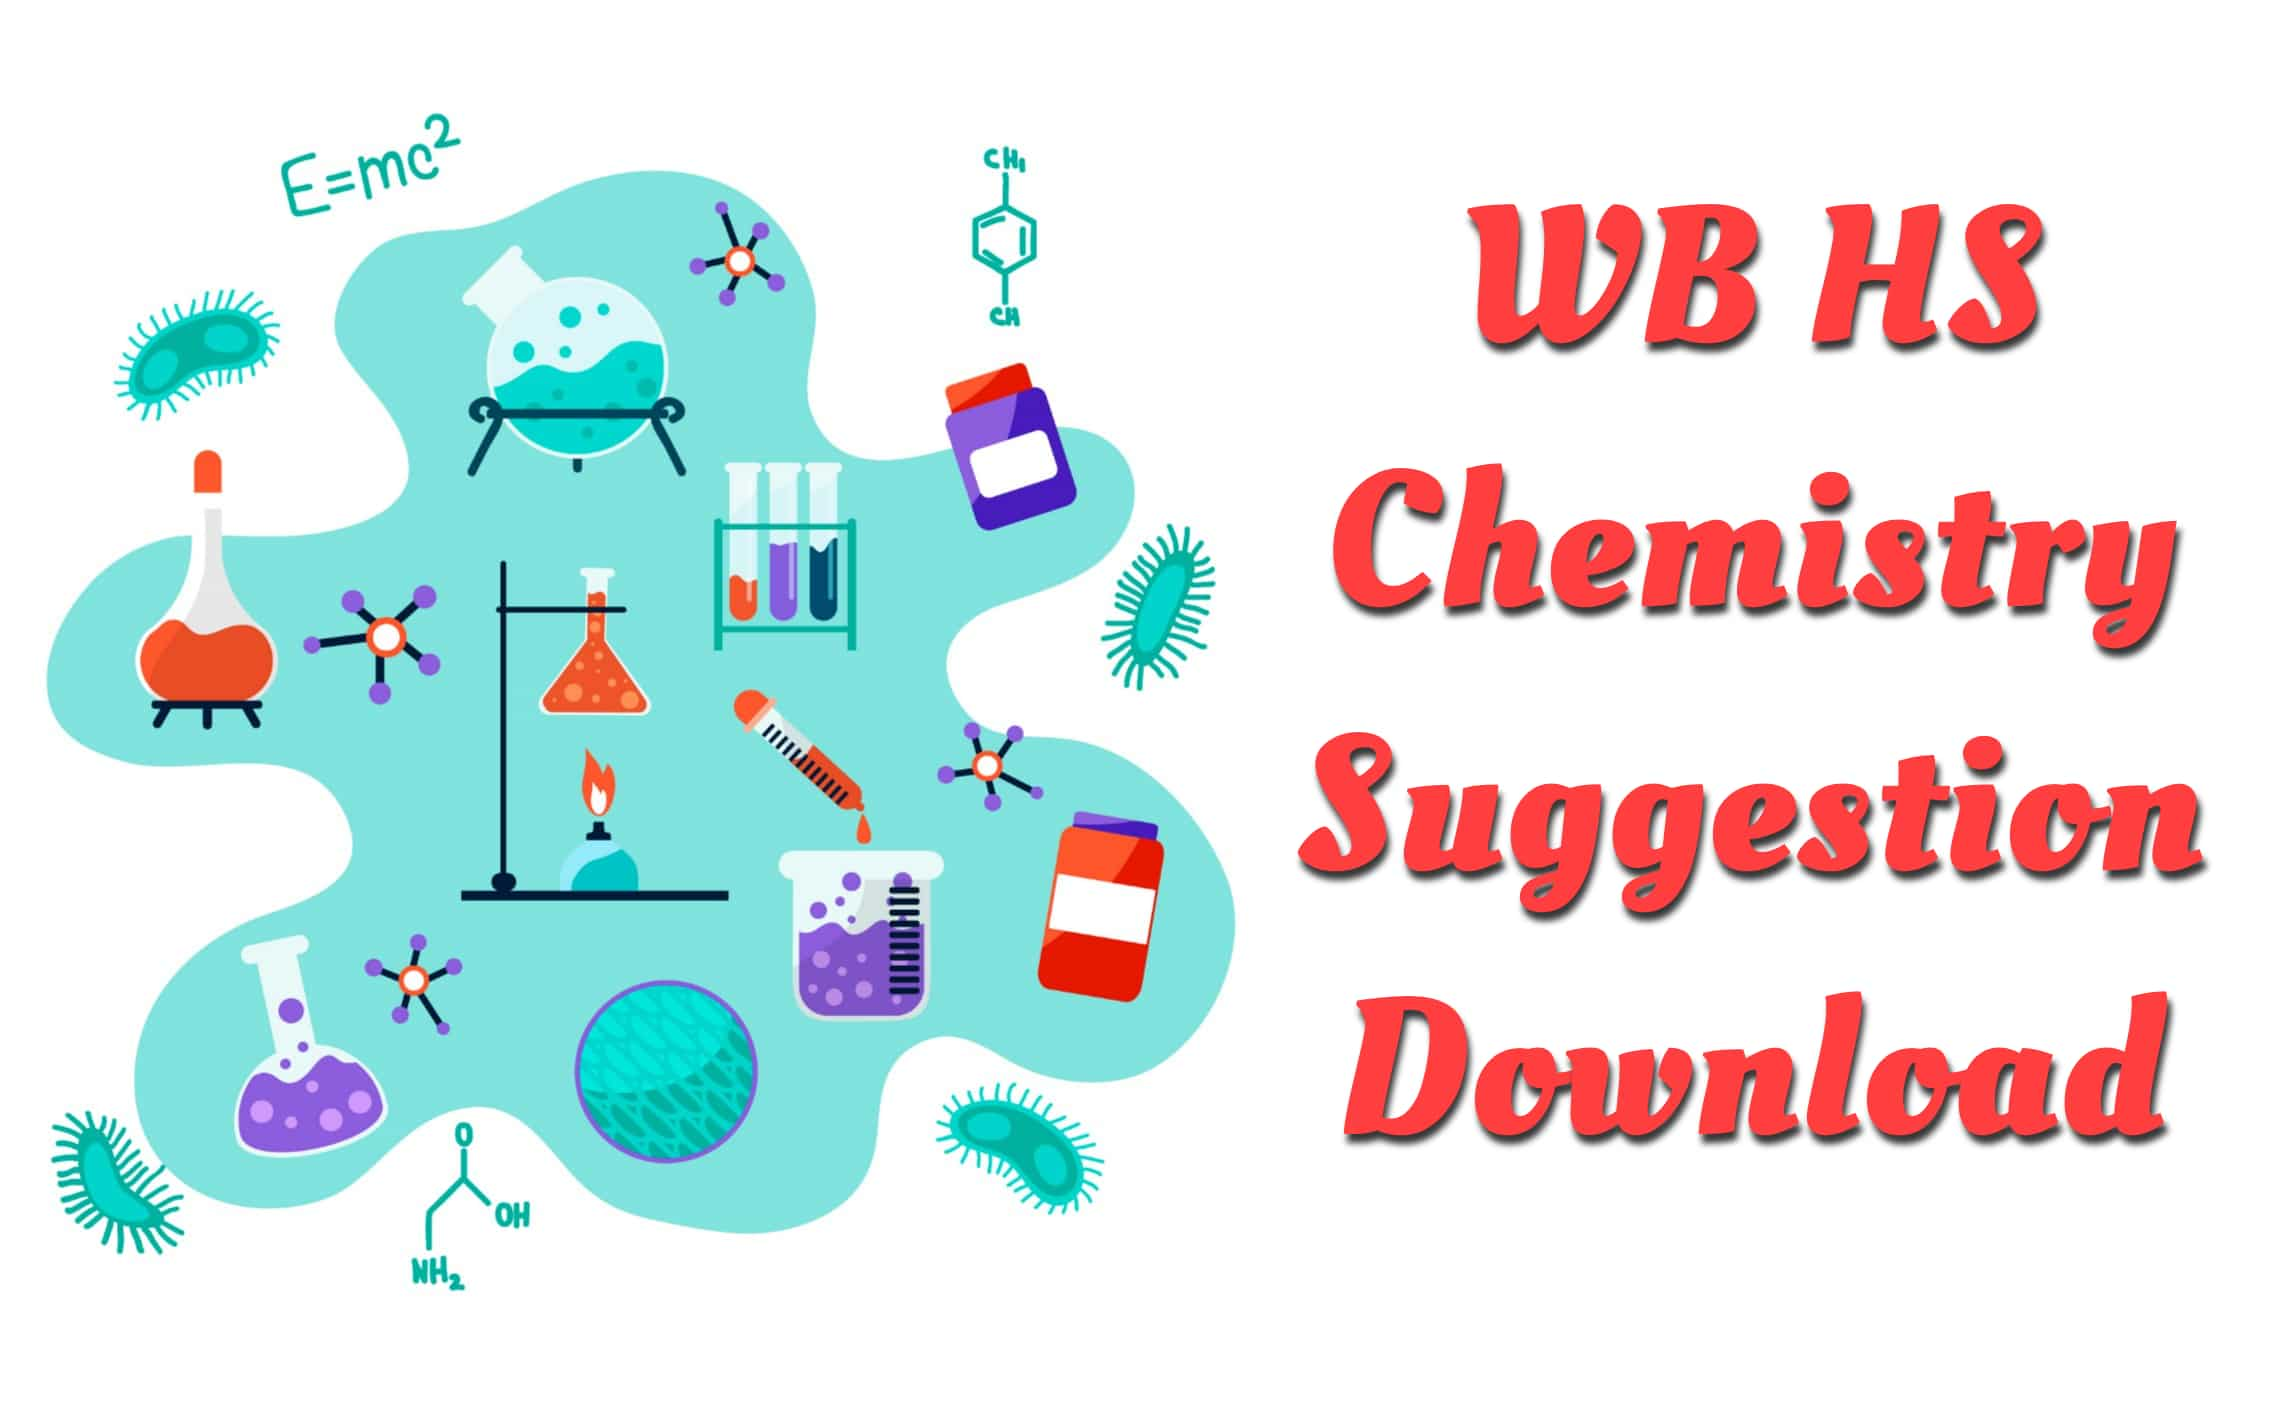 WB HS Chemistry Suggestion 2022